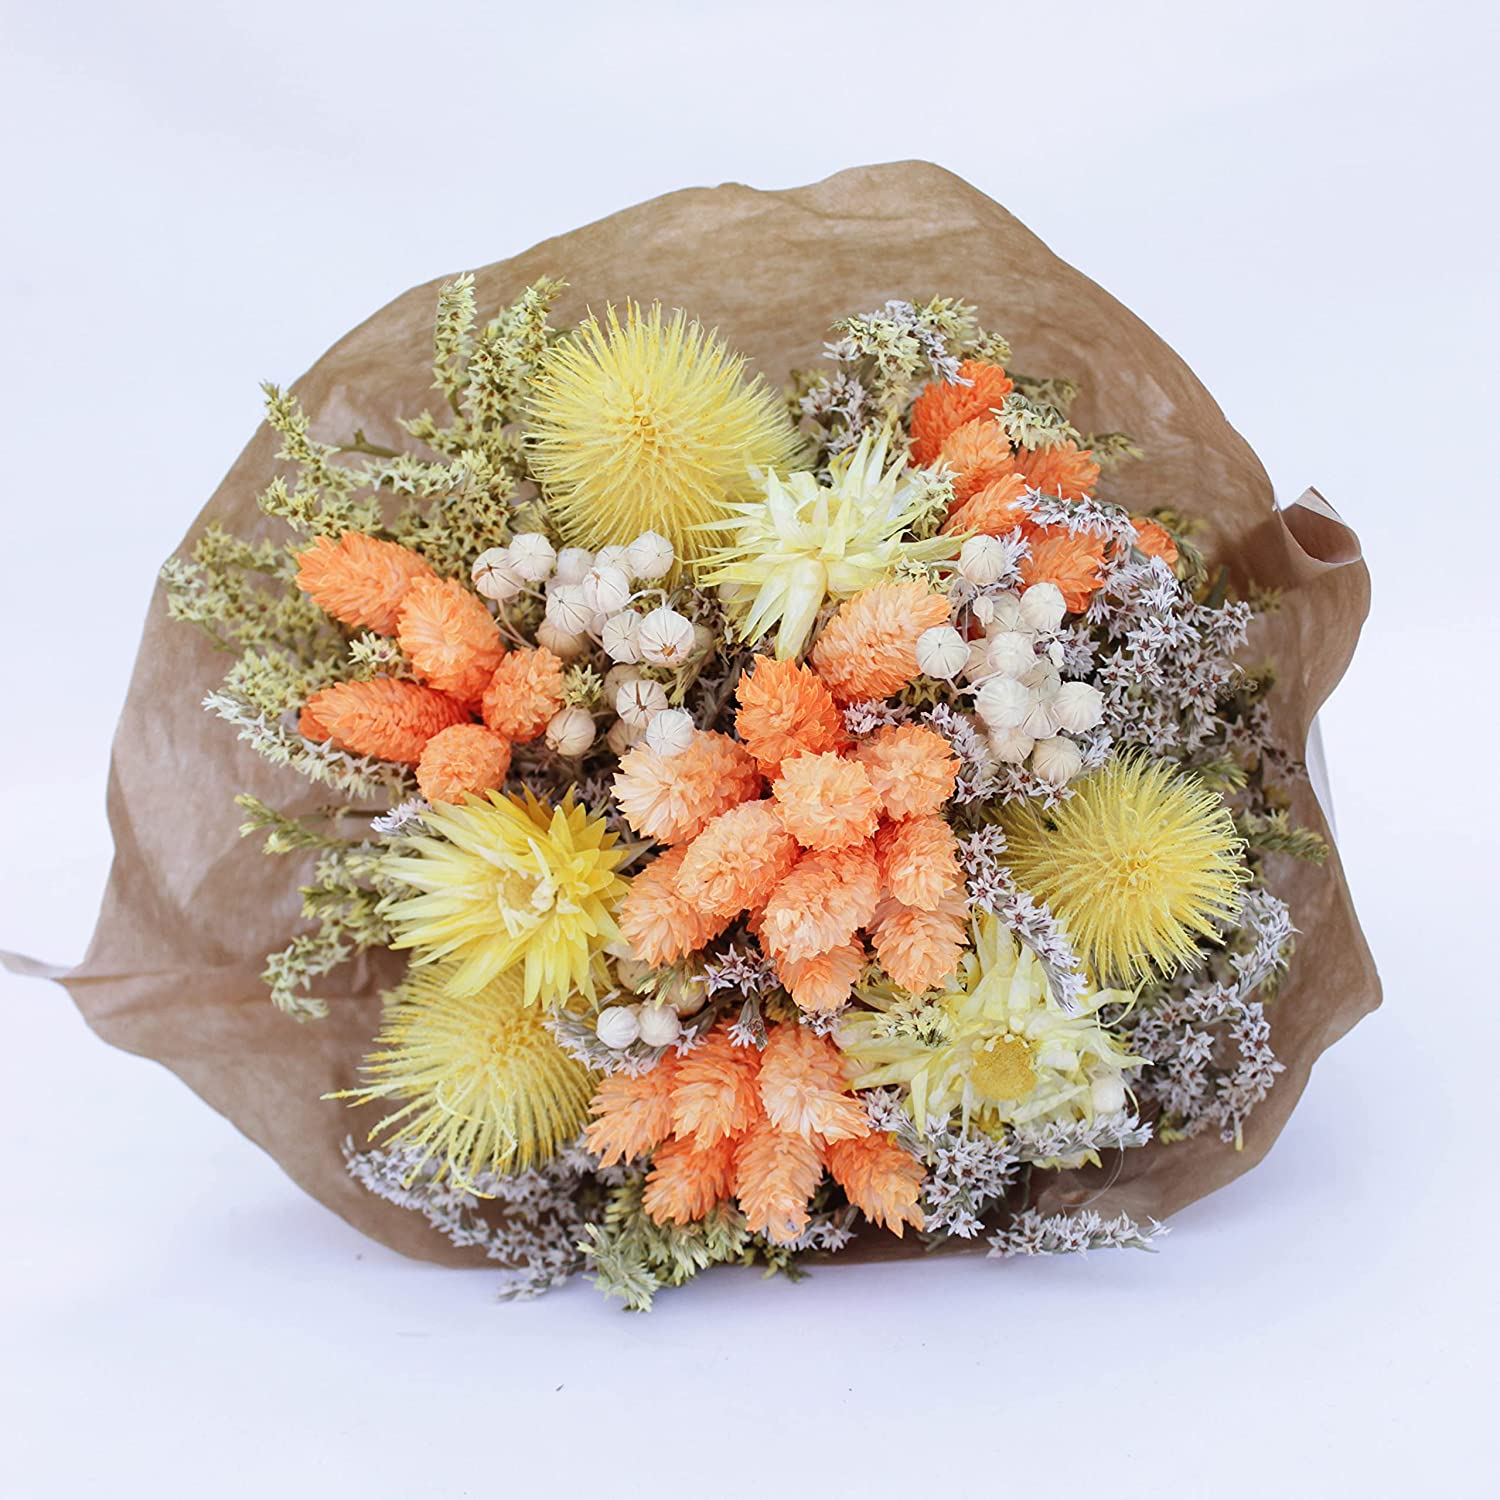 Bundle Industry No. 1 Now free shipping of Joy Bouquet Air-dried Flower Preserved Wild Bunch O